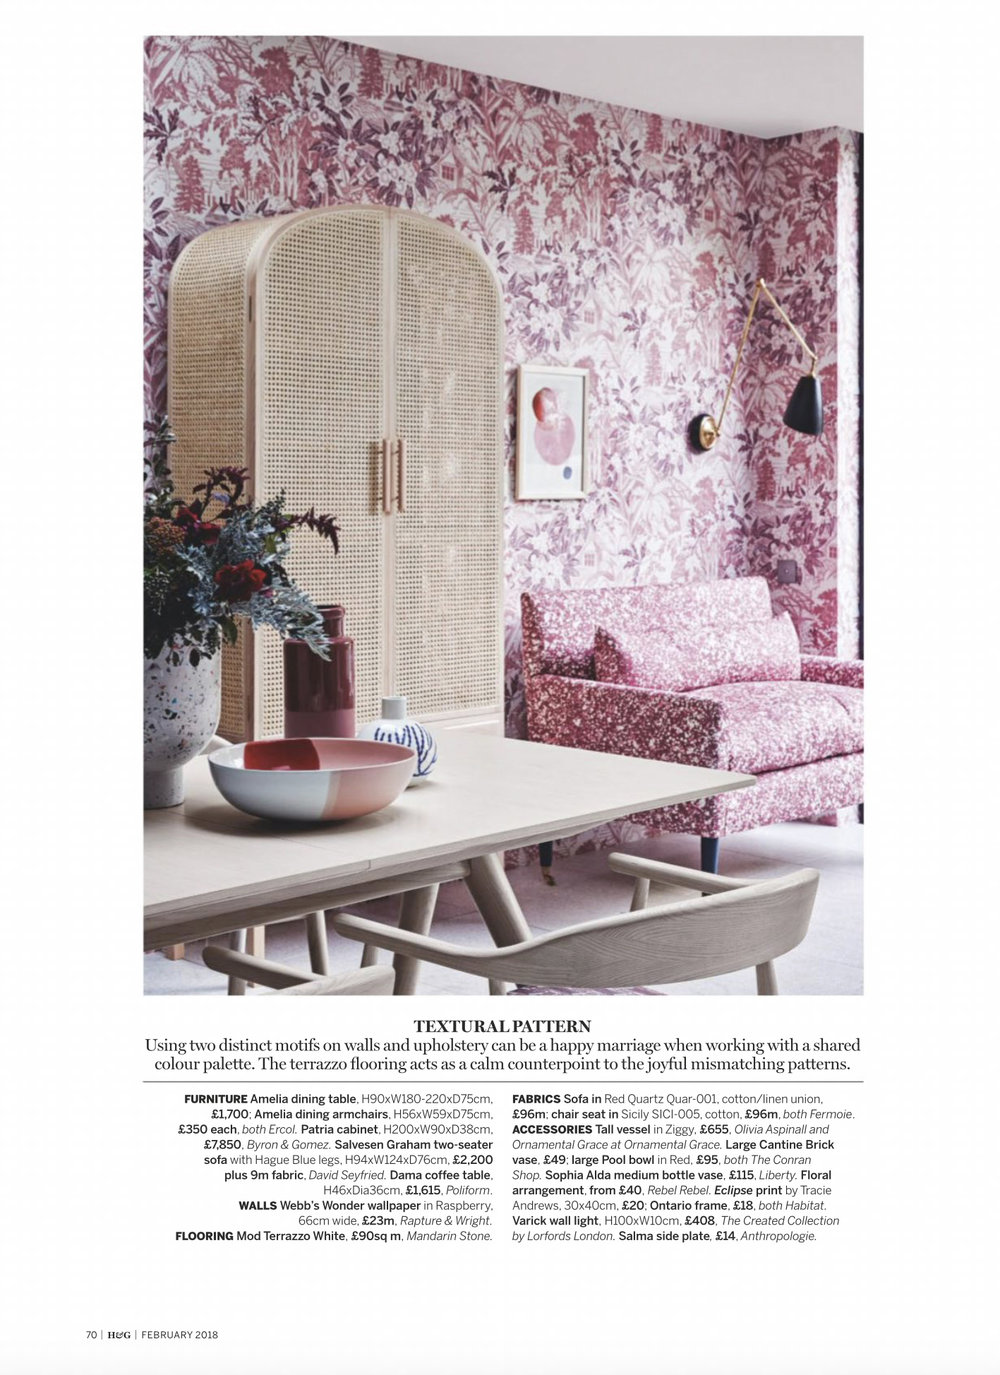 Homes & Gardens Page 1.jpg